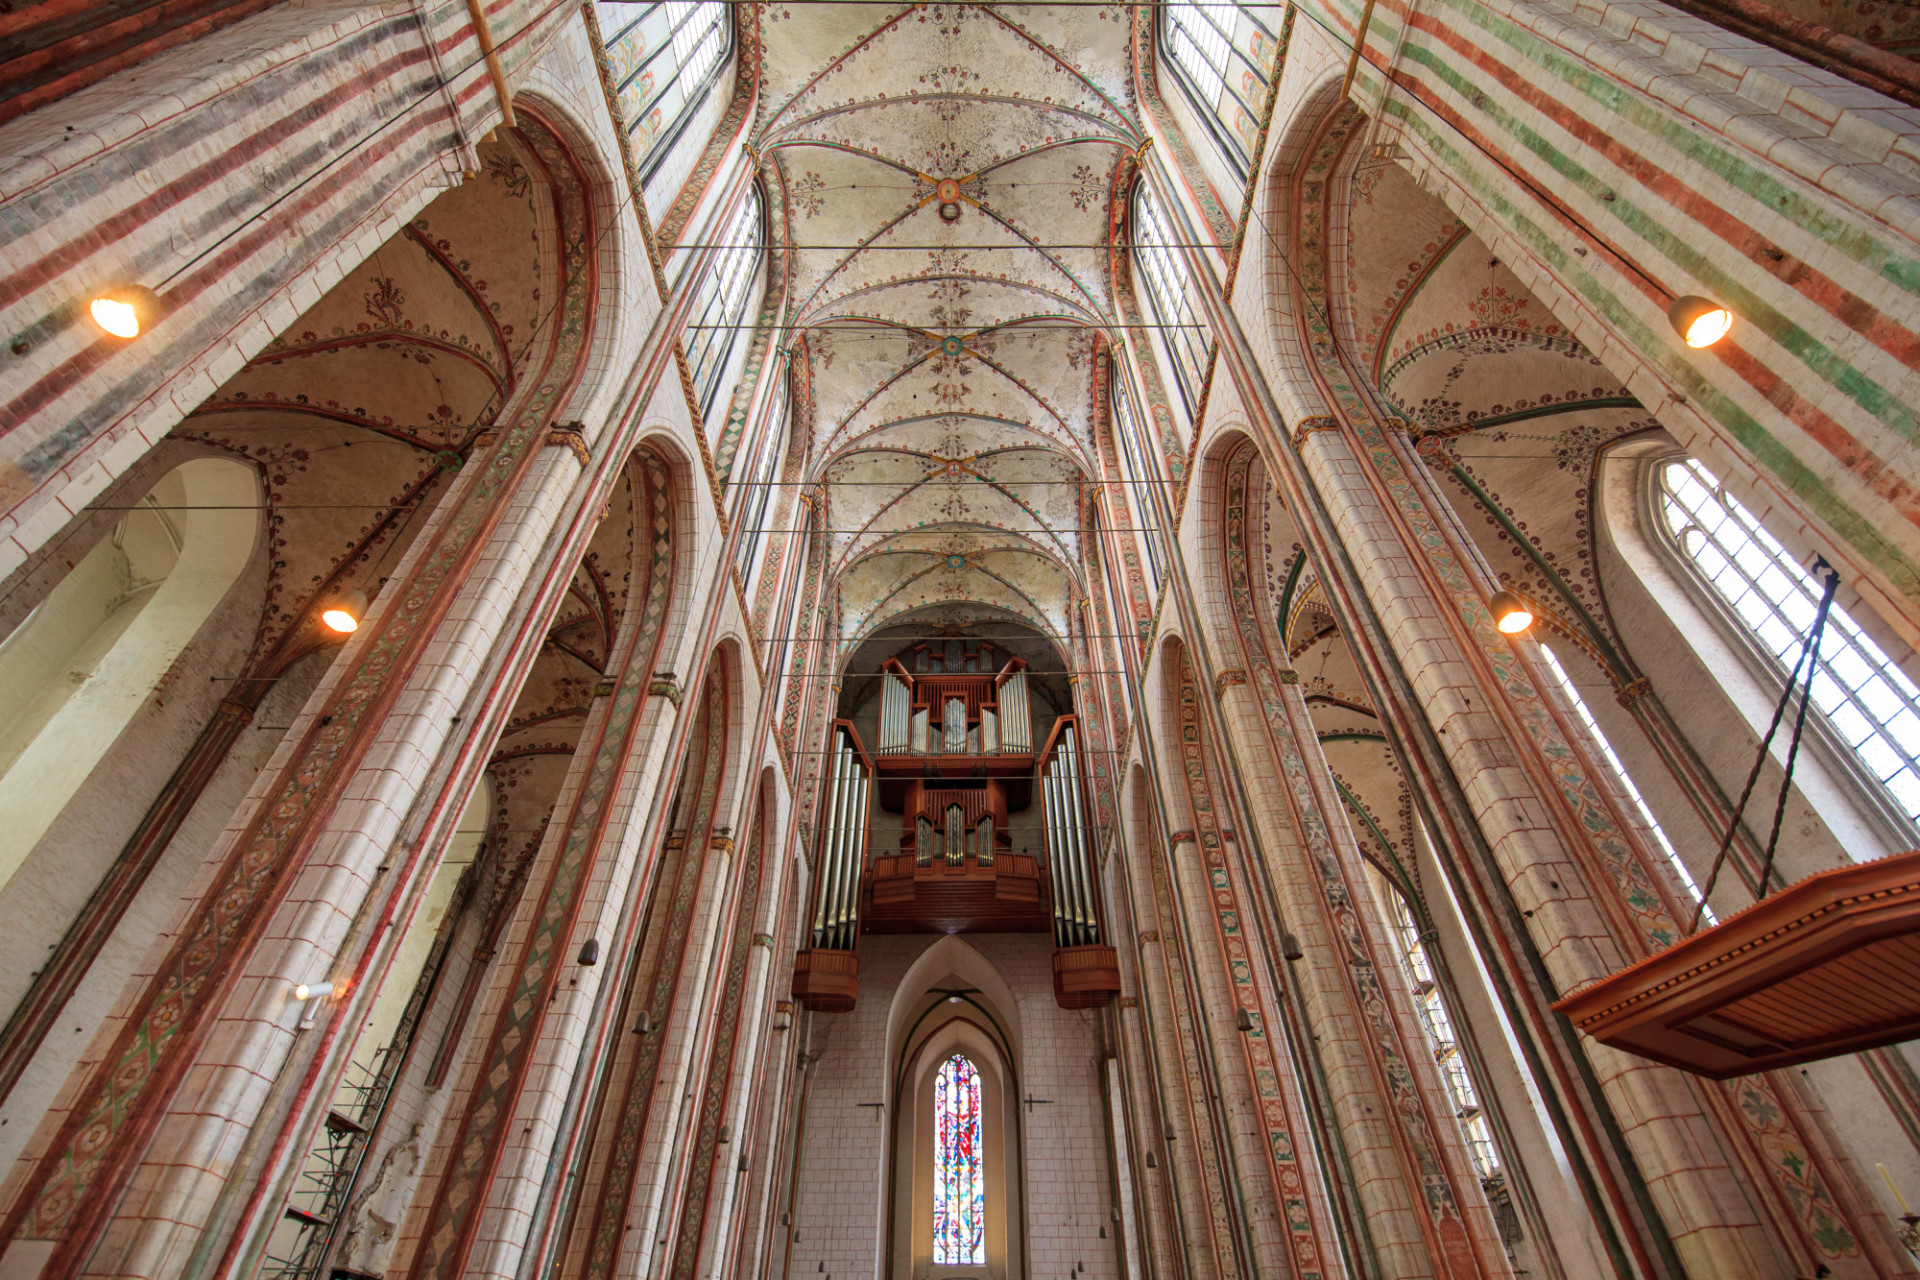 View up to the organ of the Marienkirche in Lübeck